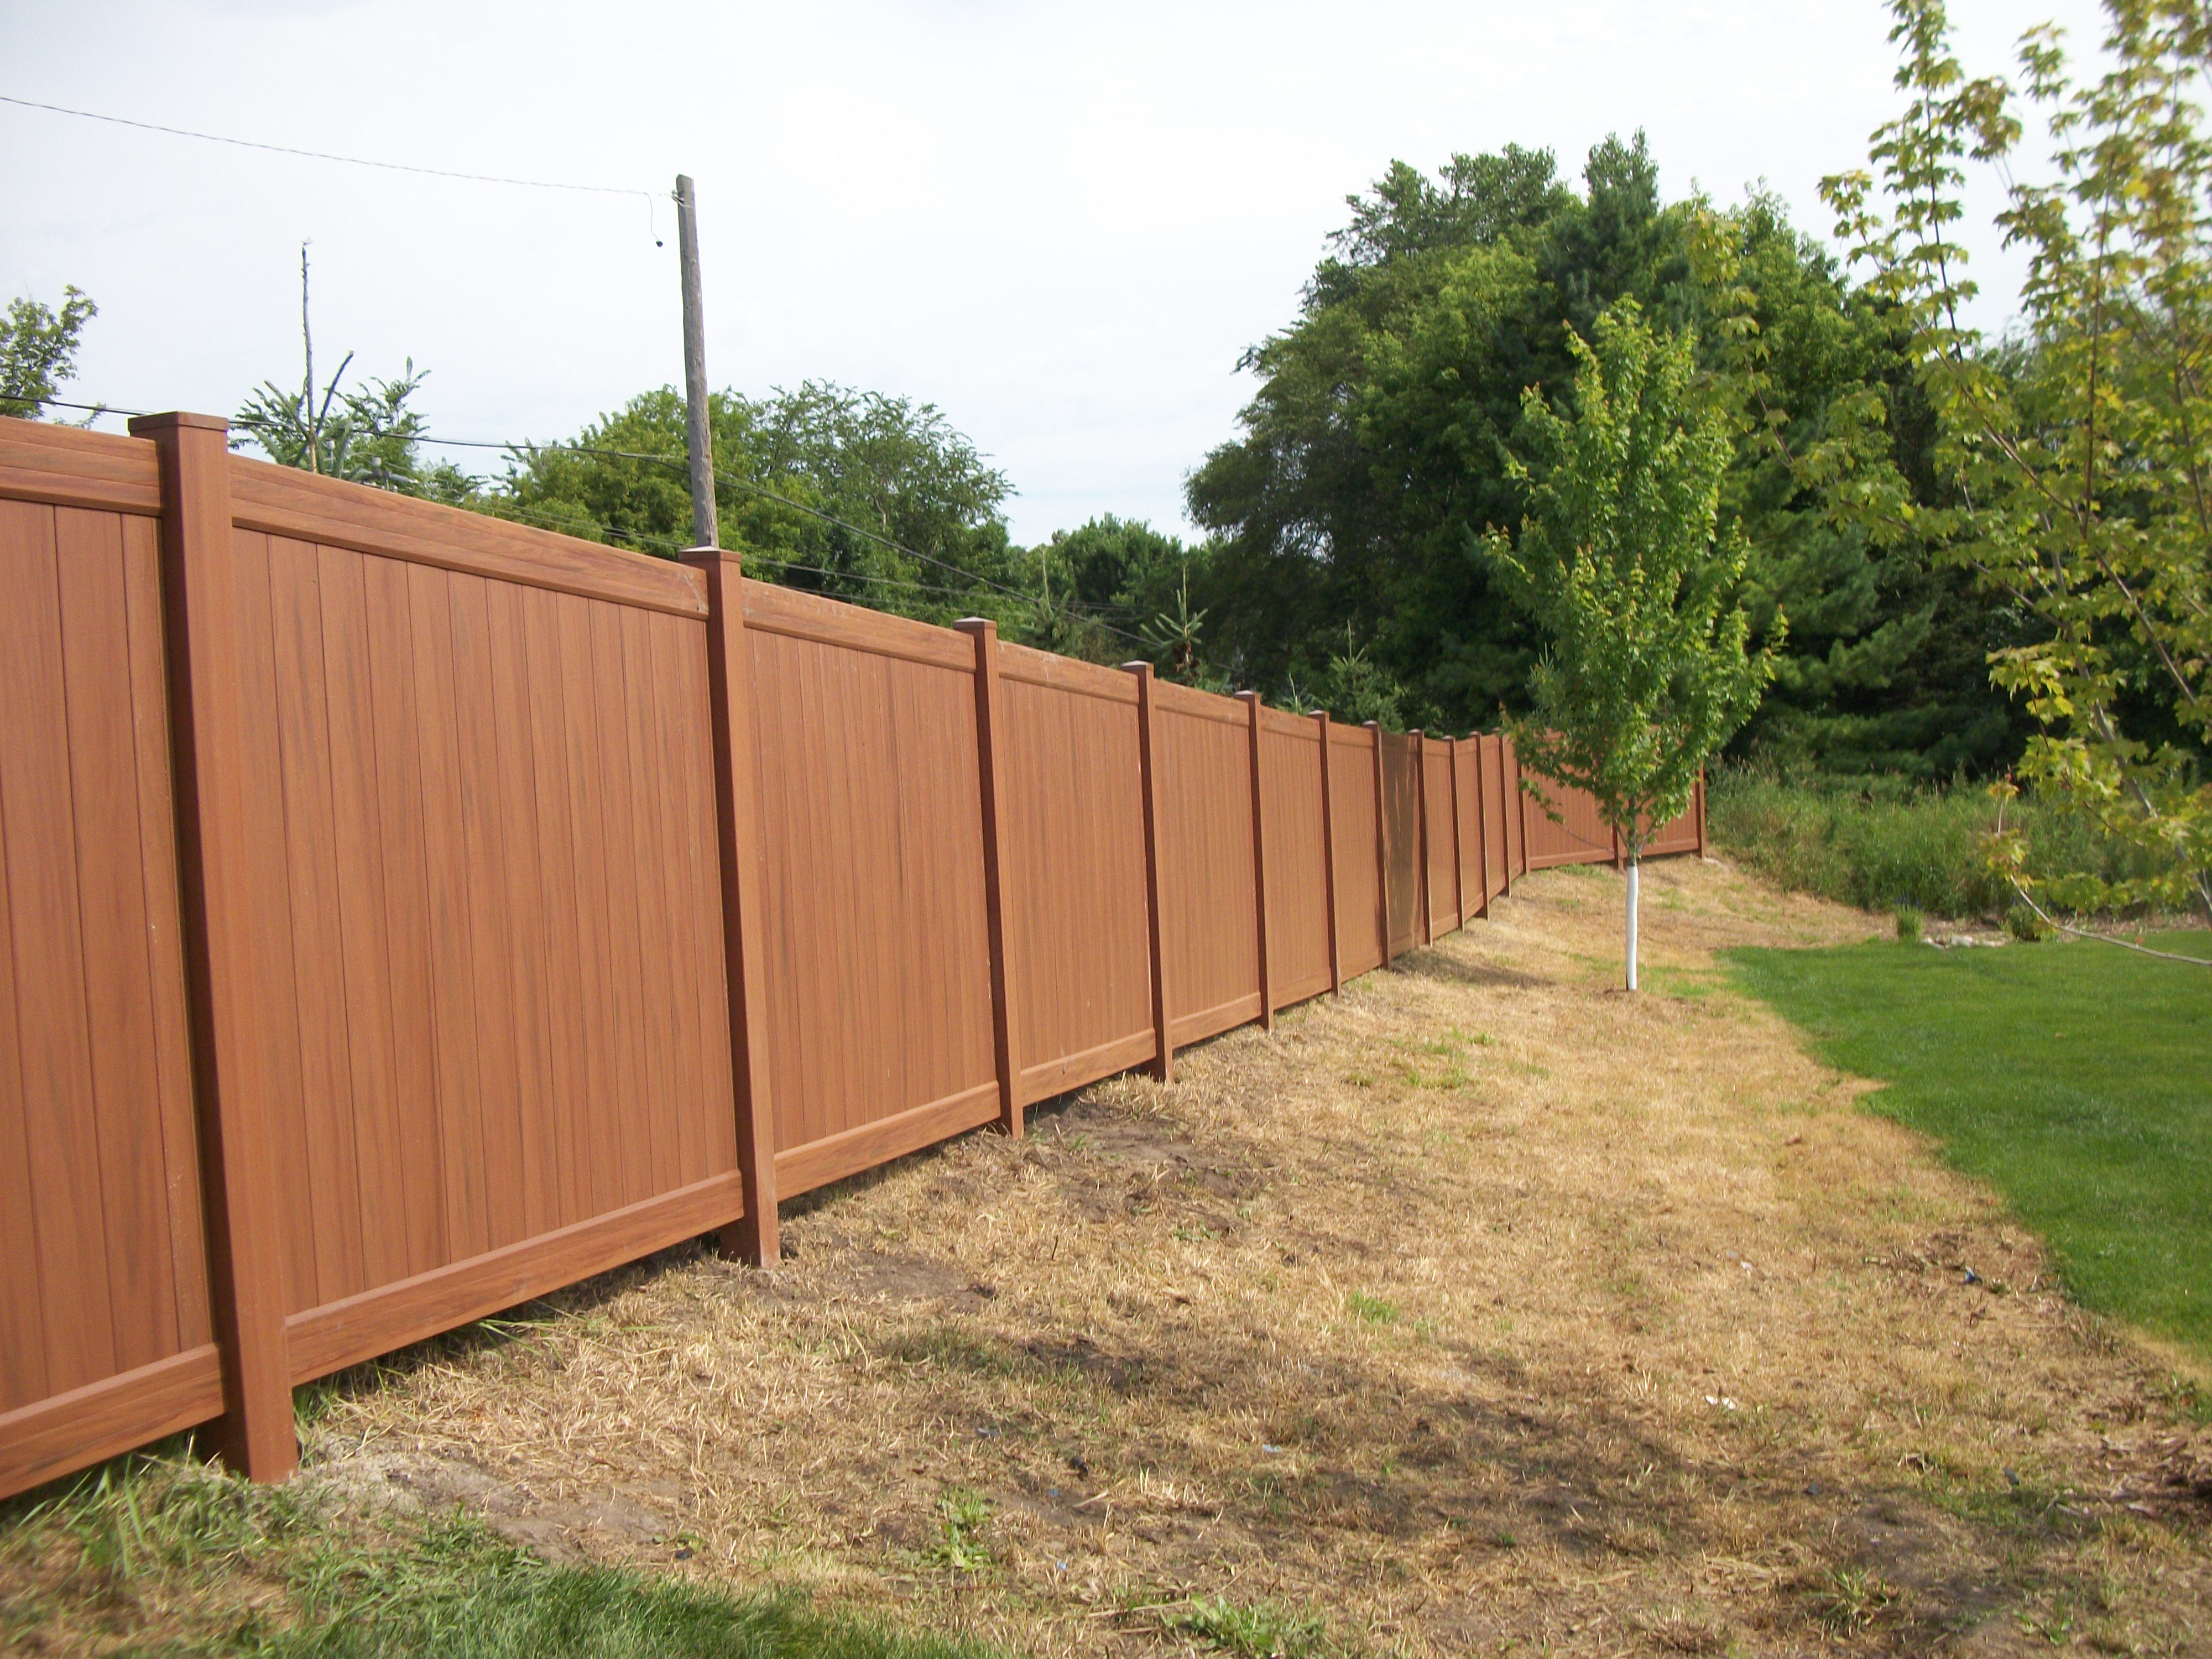 Diy Discounted Fence Materials Of Usa 612 462 8373